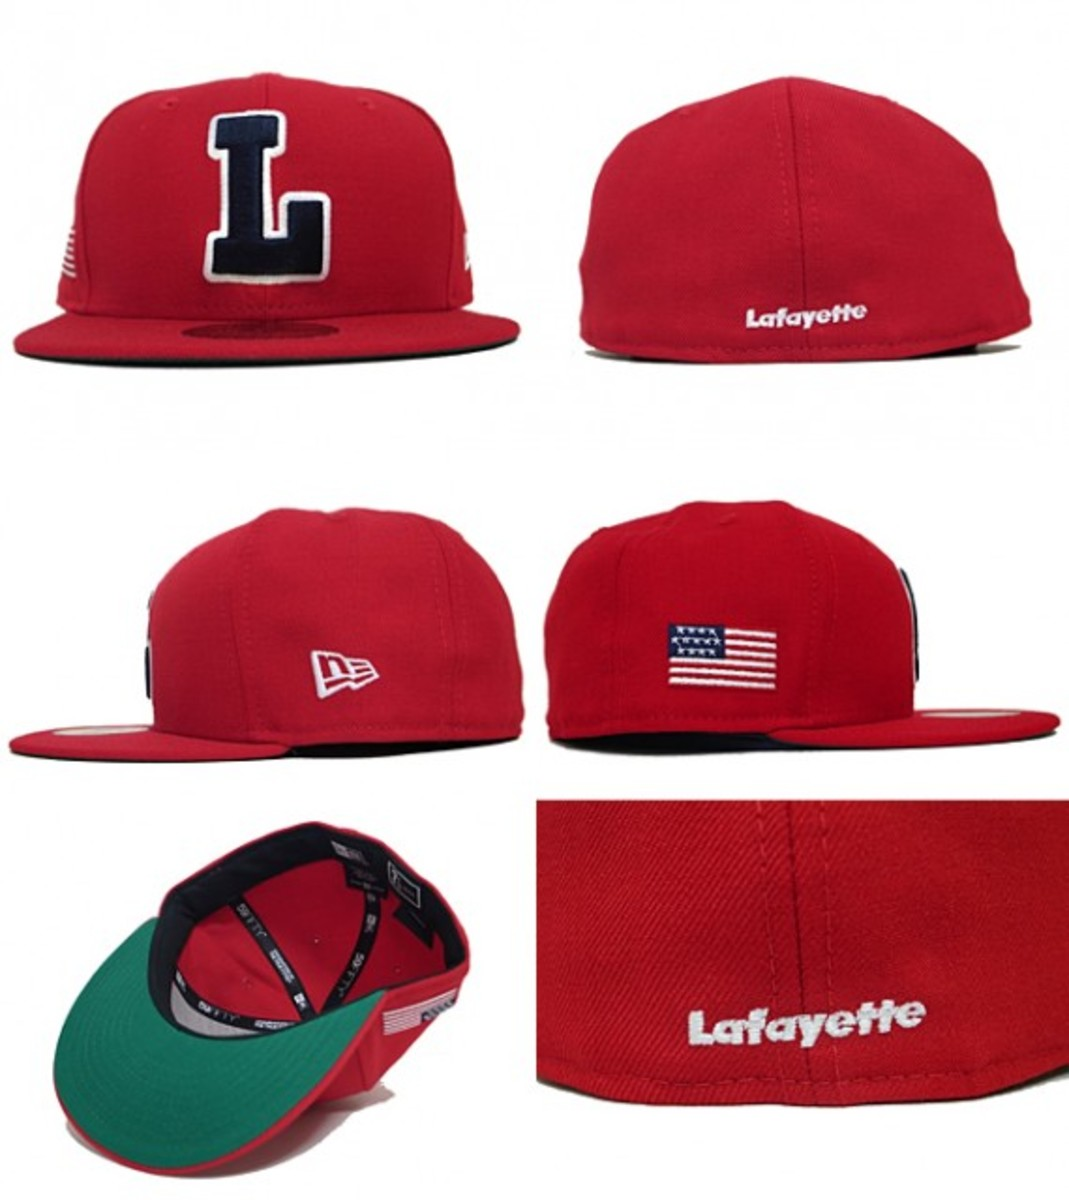 big-l-logo-cap-red-02